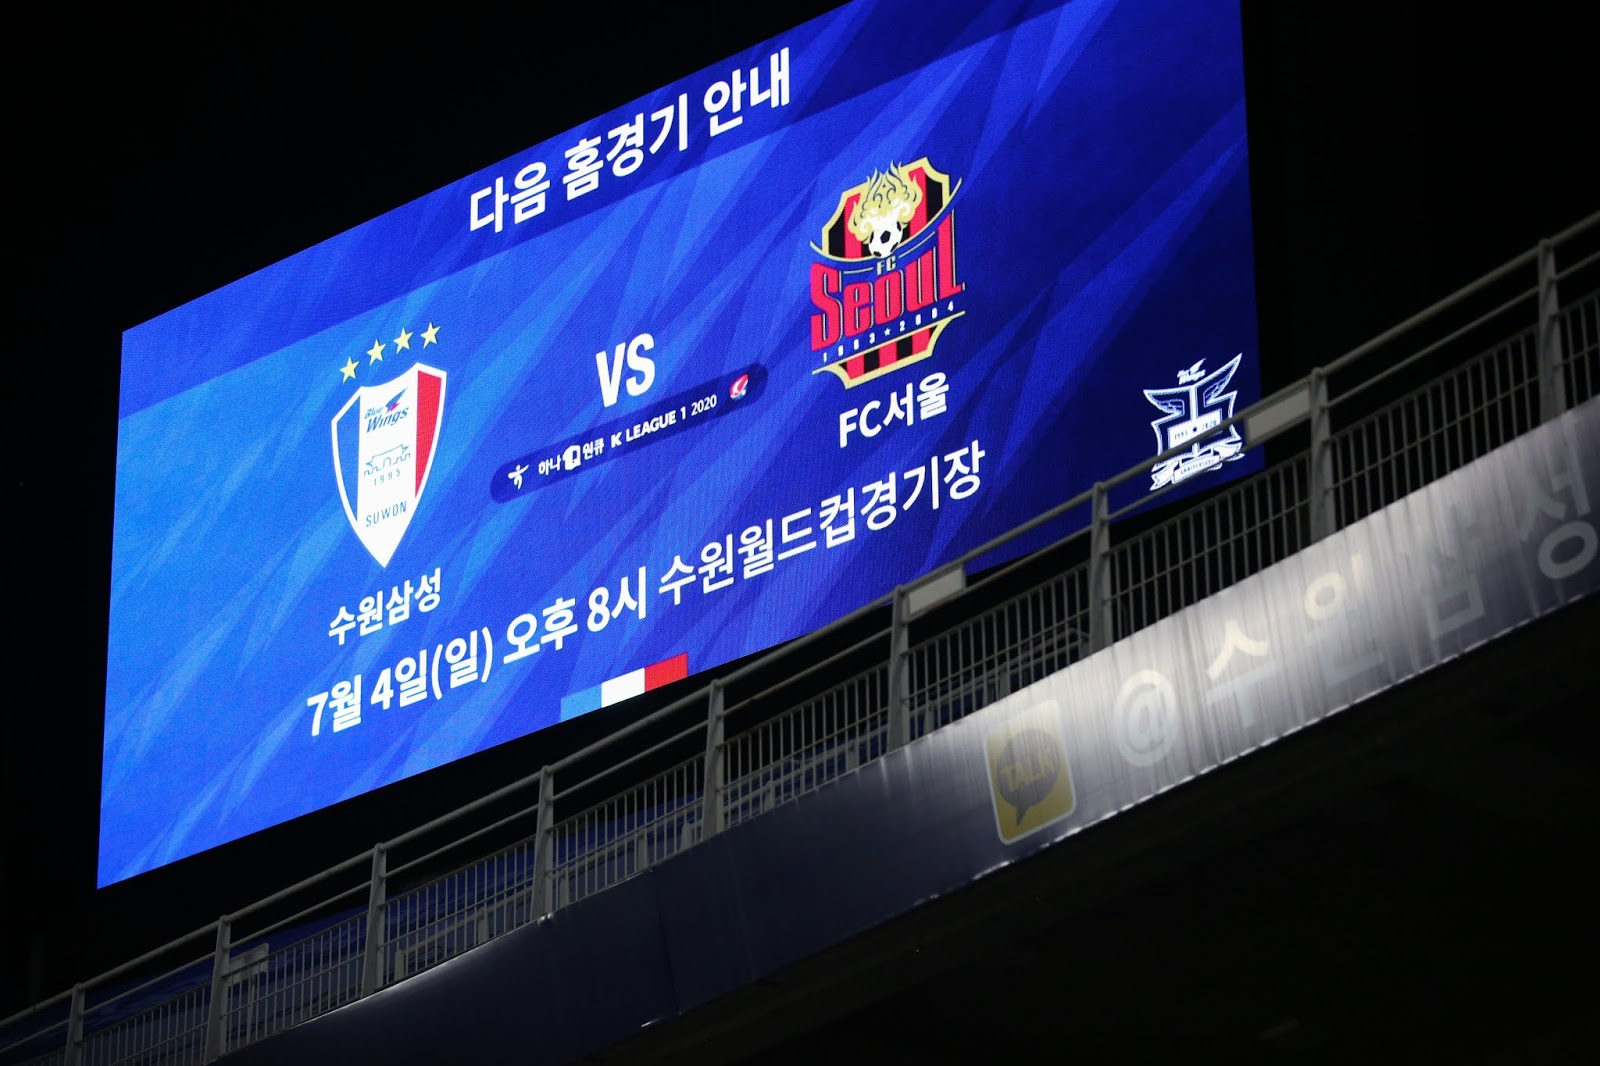 Super Match Preview: Suwon Samsung Bluewings vs FC Seoul